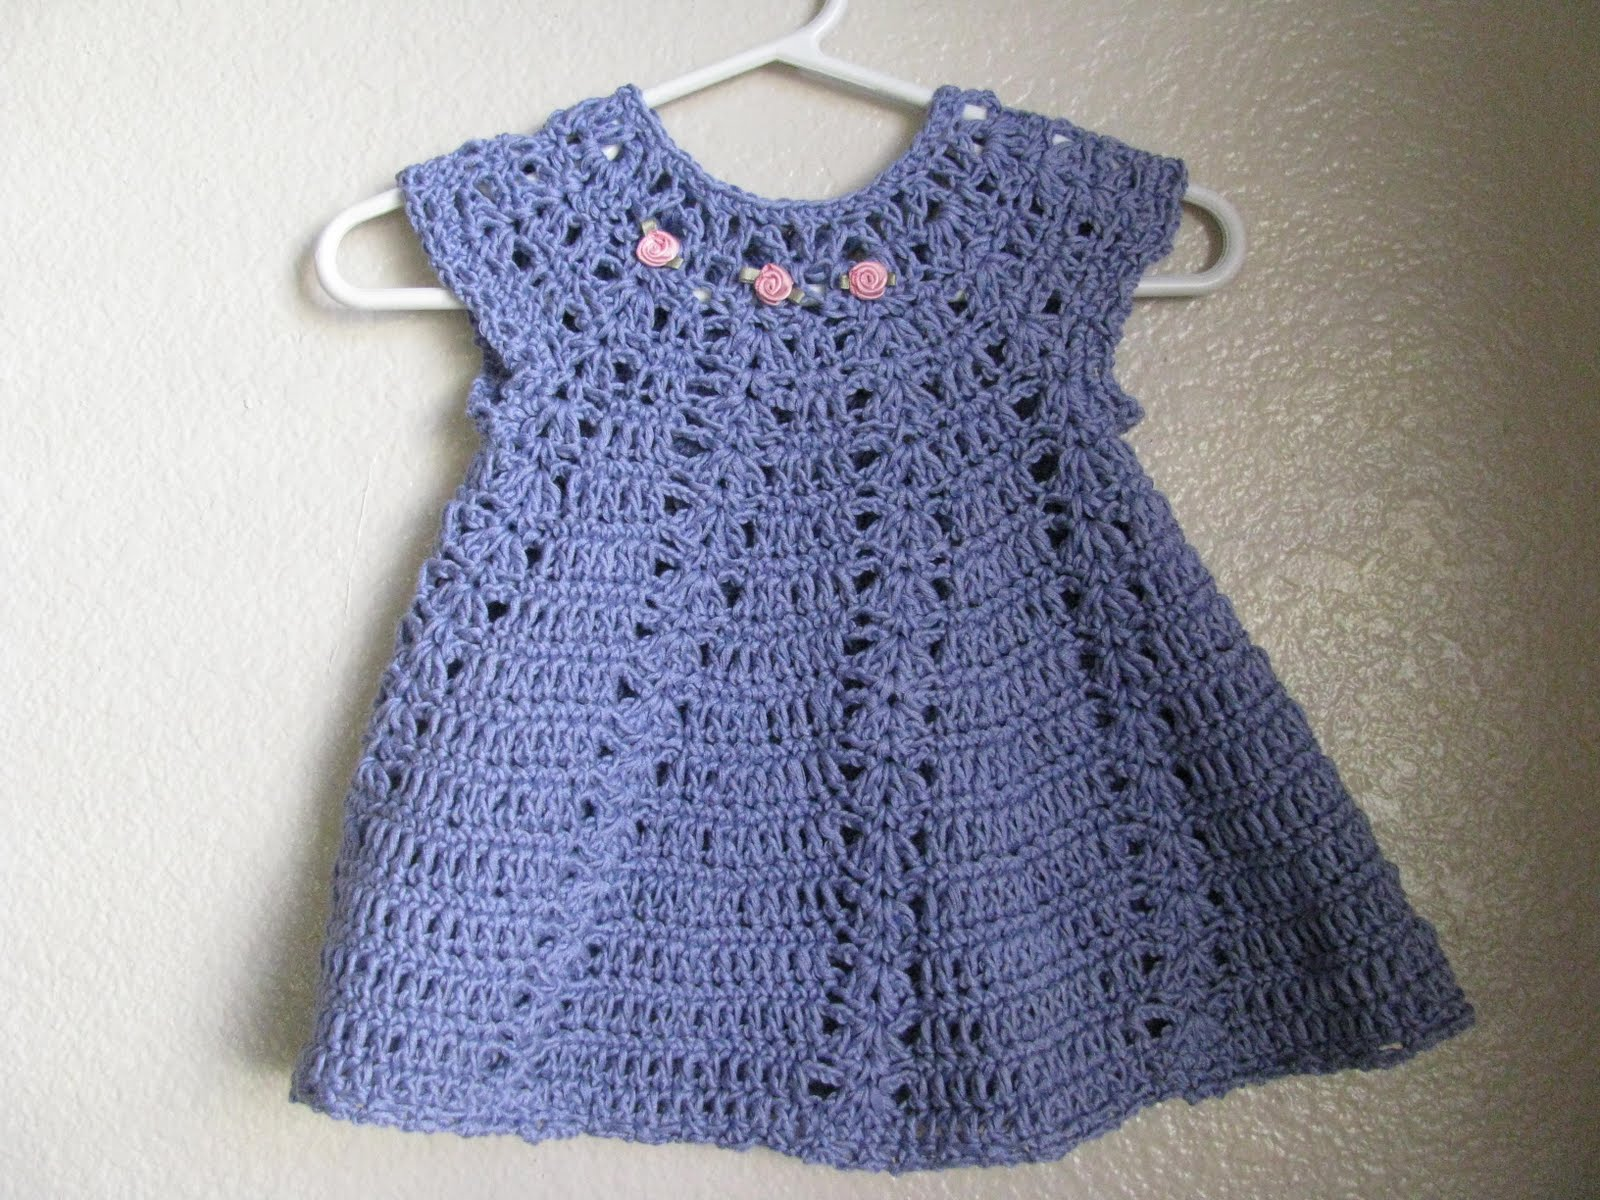 Crochet Baby Pattern Cardigan : My latest project: My first crocheted baby dress finished!